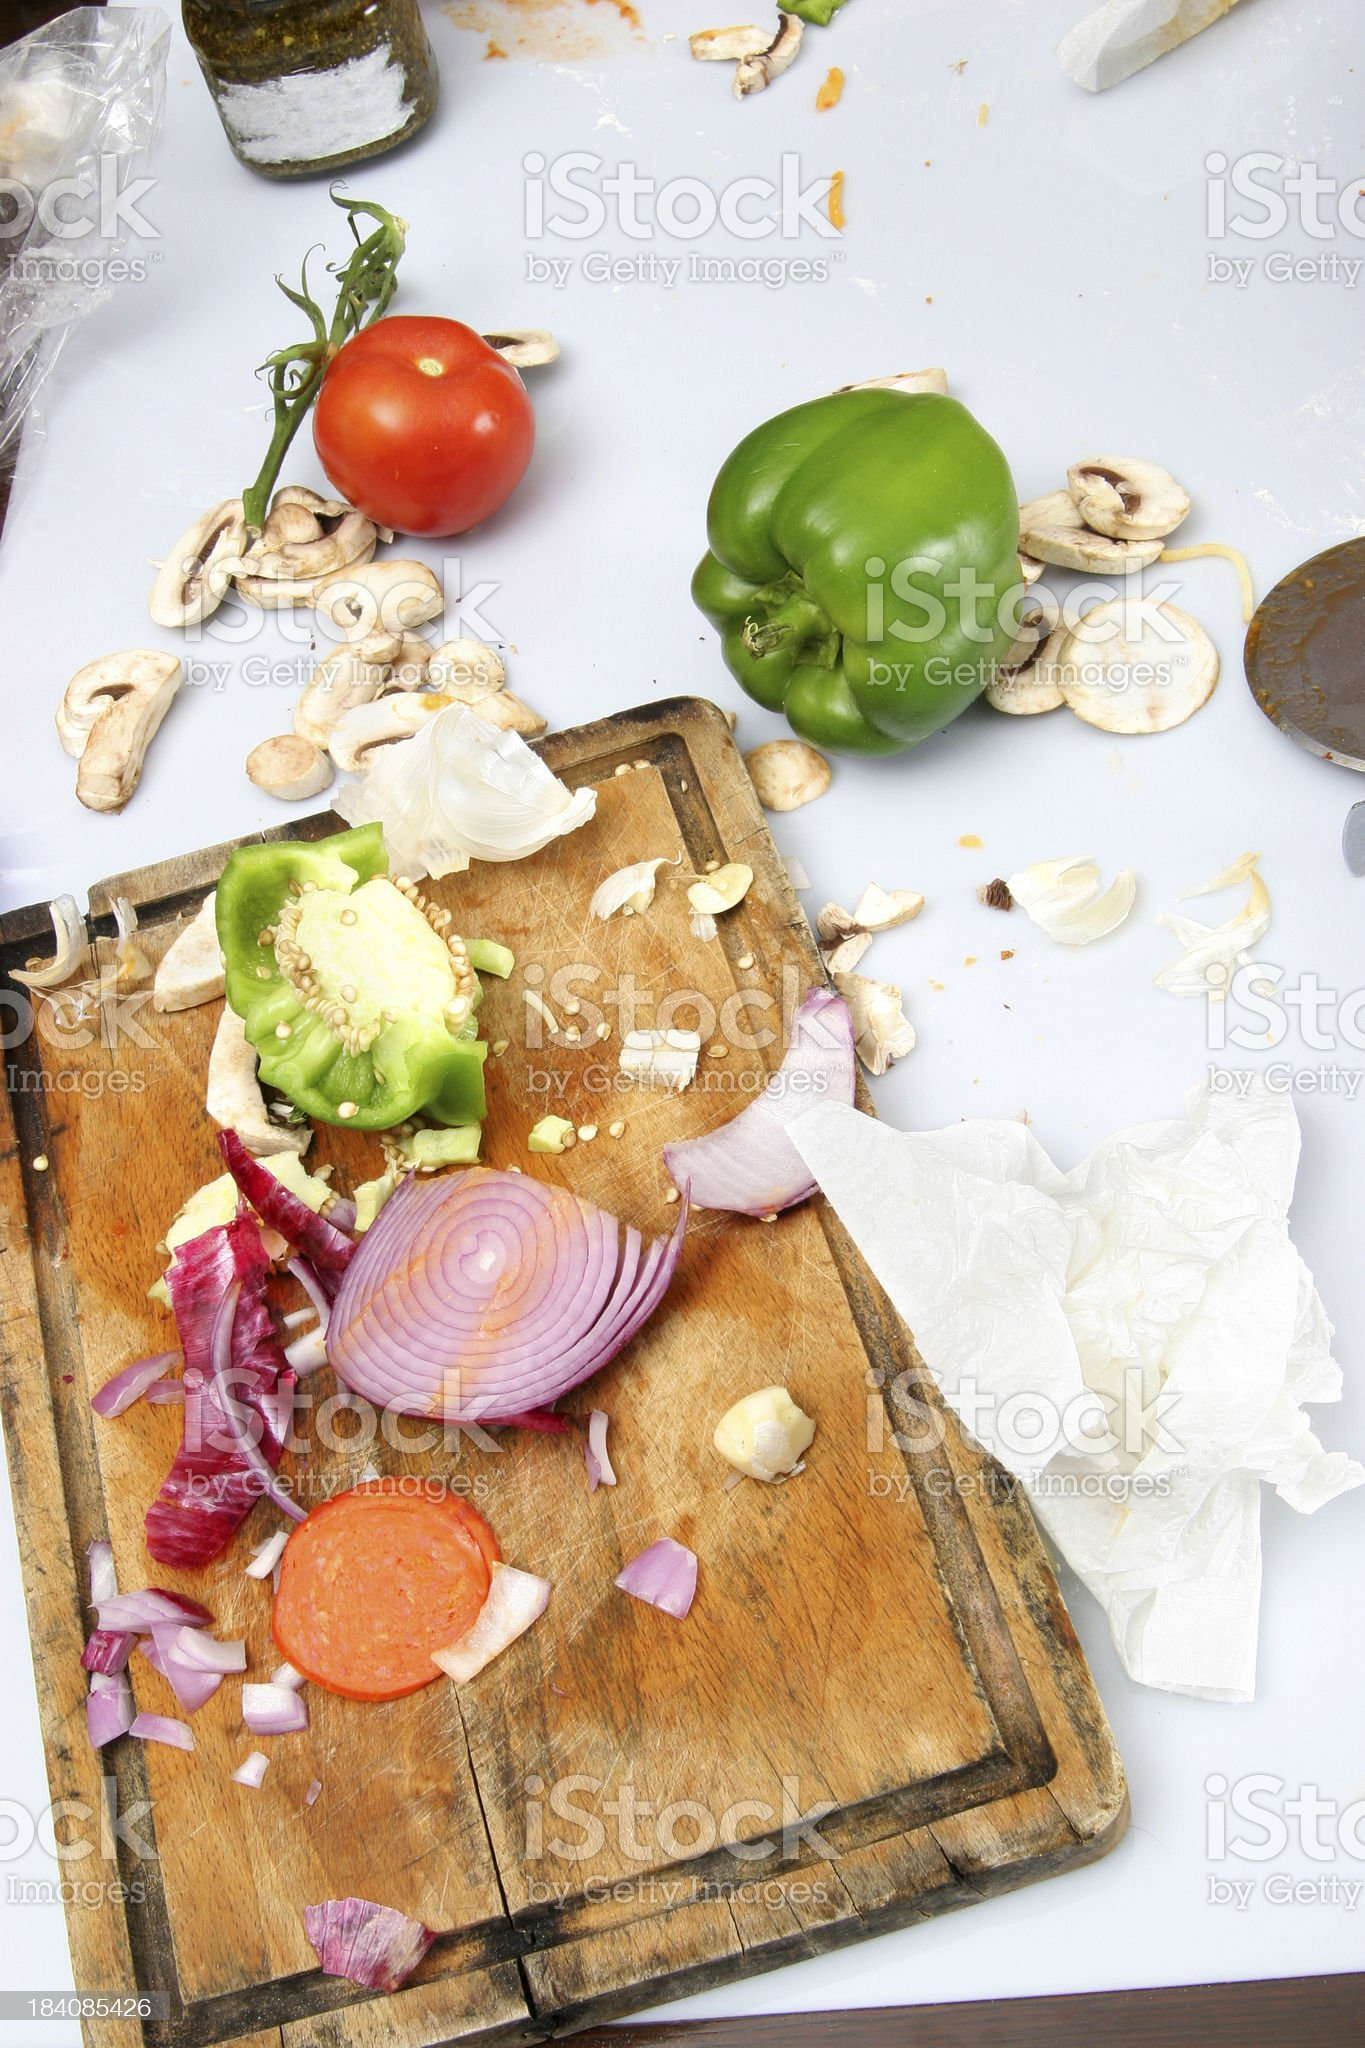 Food Preparation - Cleanup Time 1 royalty-free stock photo